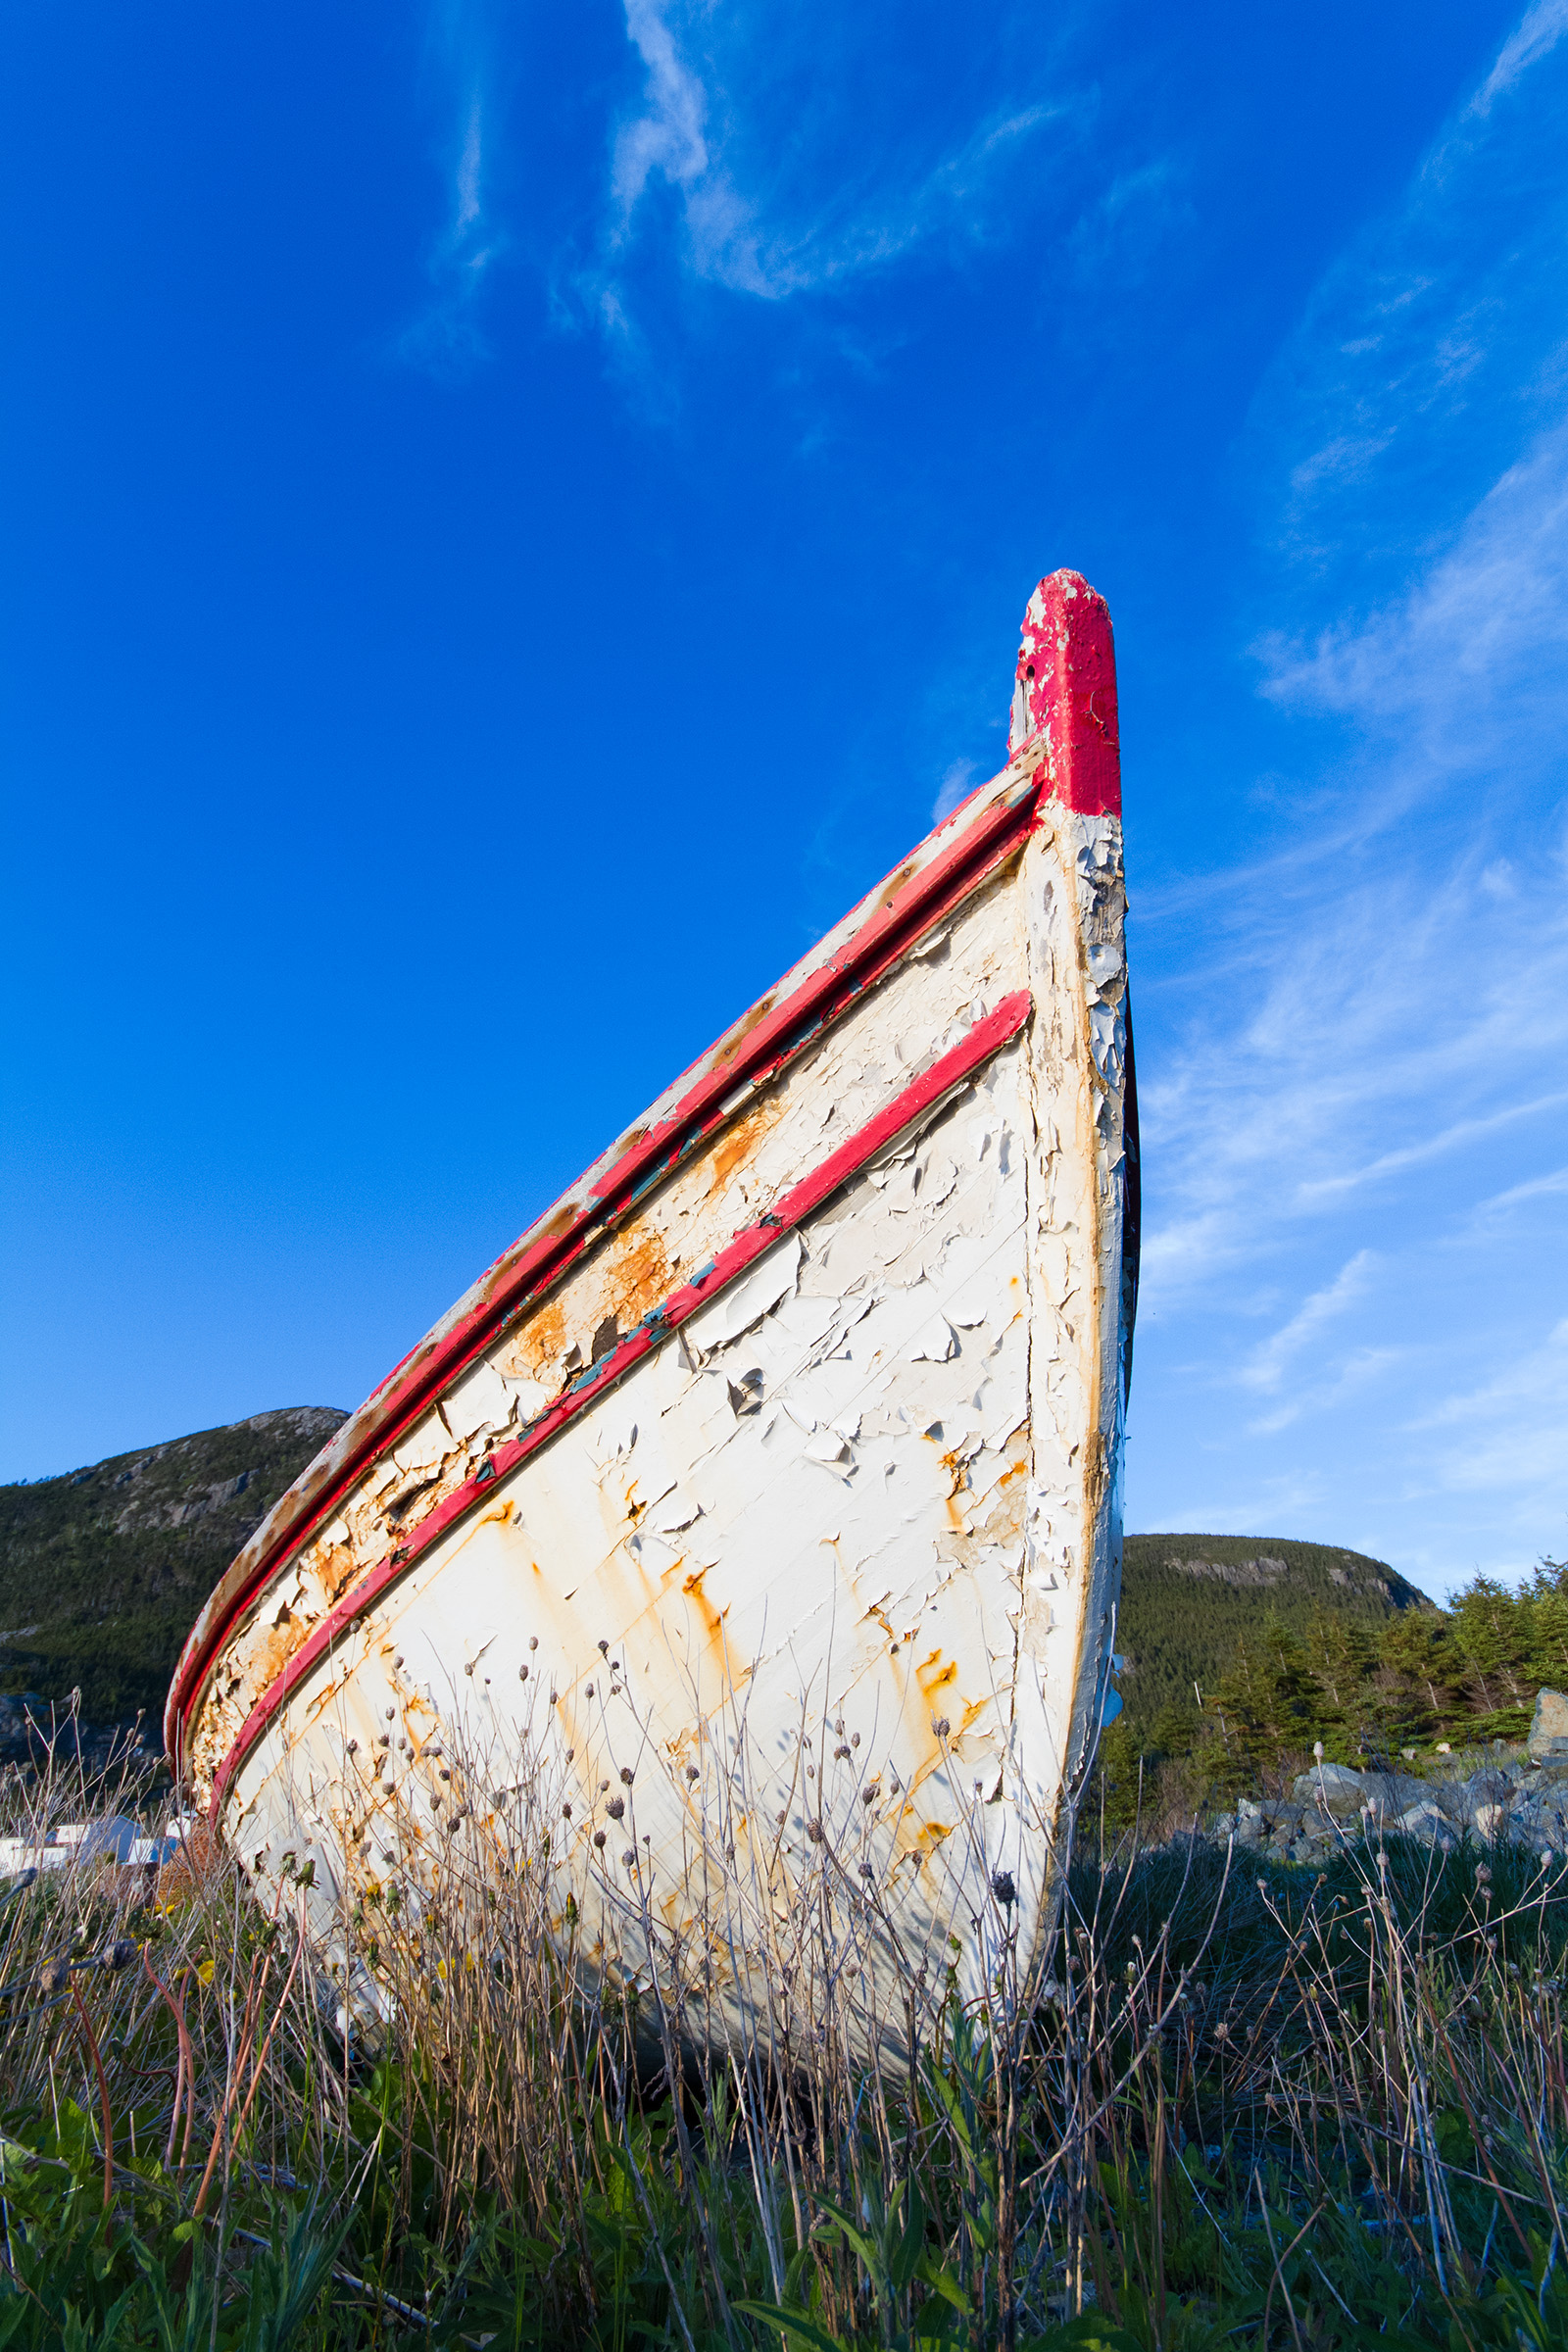 Boat and blue sky, Beautiful, Transport, Sky, Summer, HQ Photo